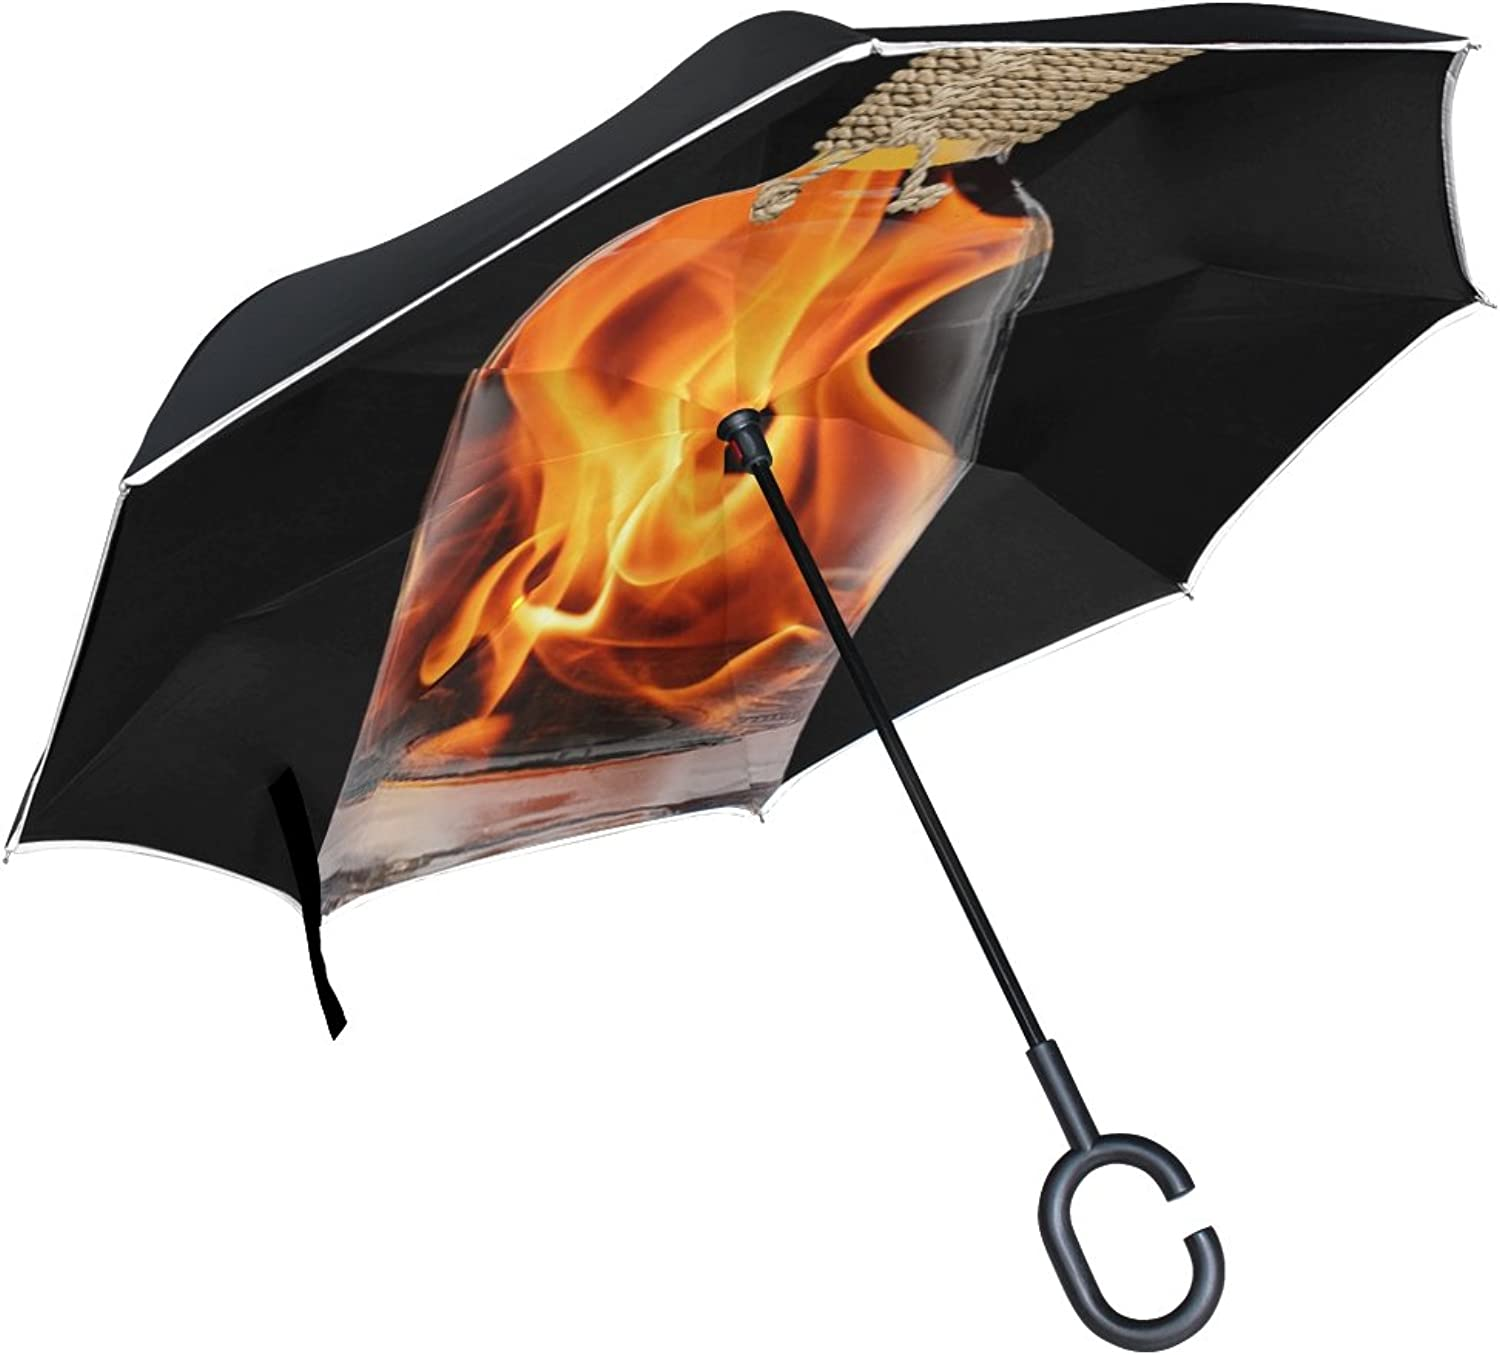 Double Layer Ingreened Flame Embers Bottle Fiery Fire Hot Burn Campfire Umbrellas Reverse Folding Umbrella Windproof Uv Predection Big Straight Umbrella for Car Rain Outdoor with CShaped Handle